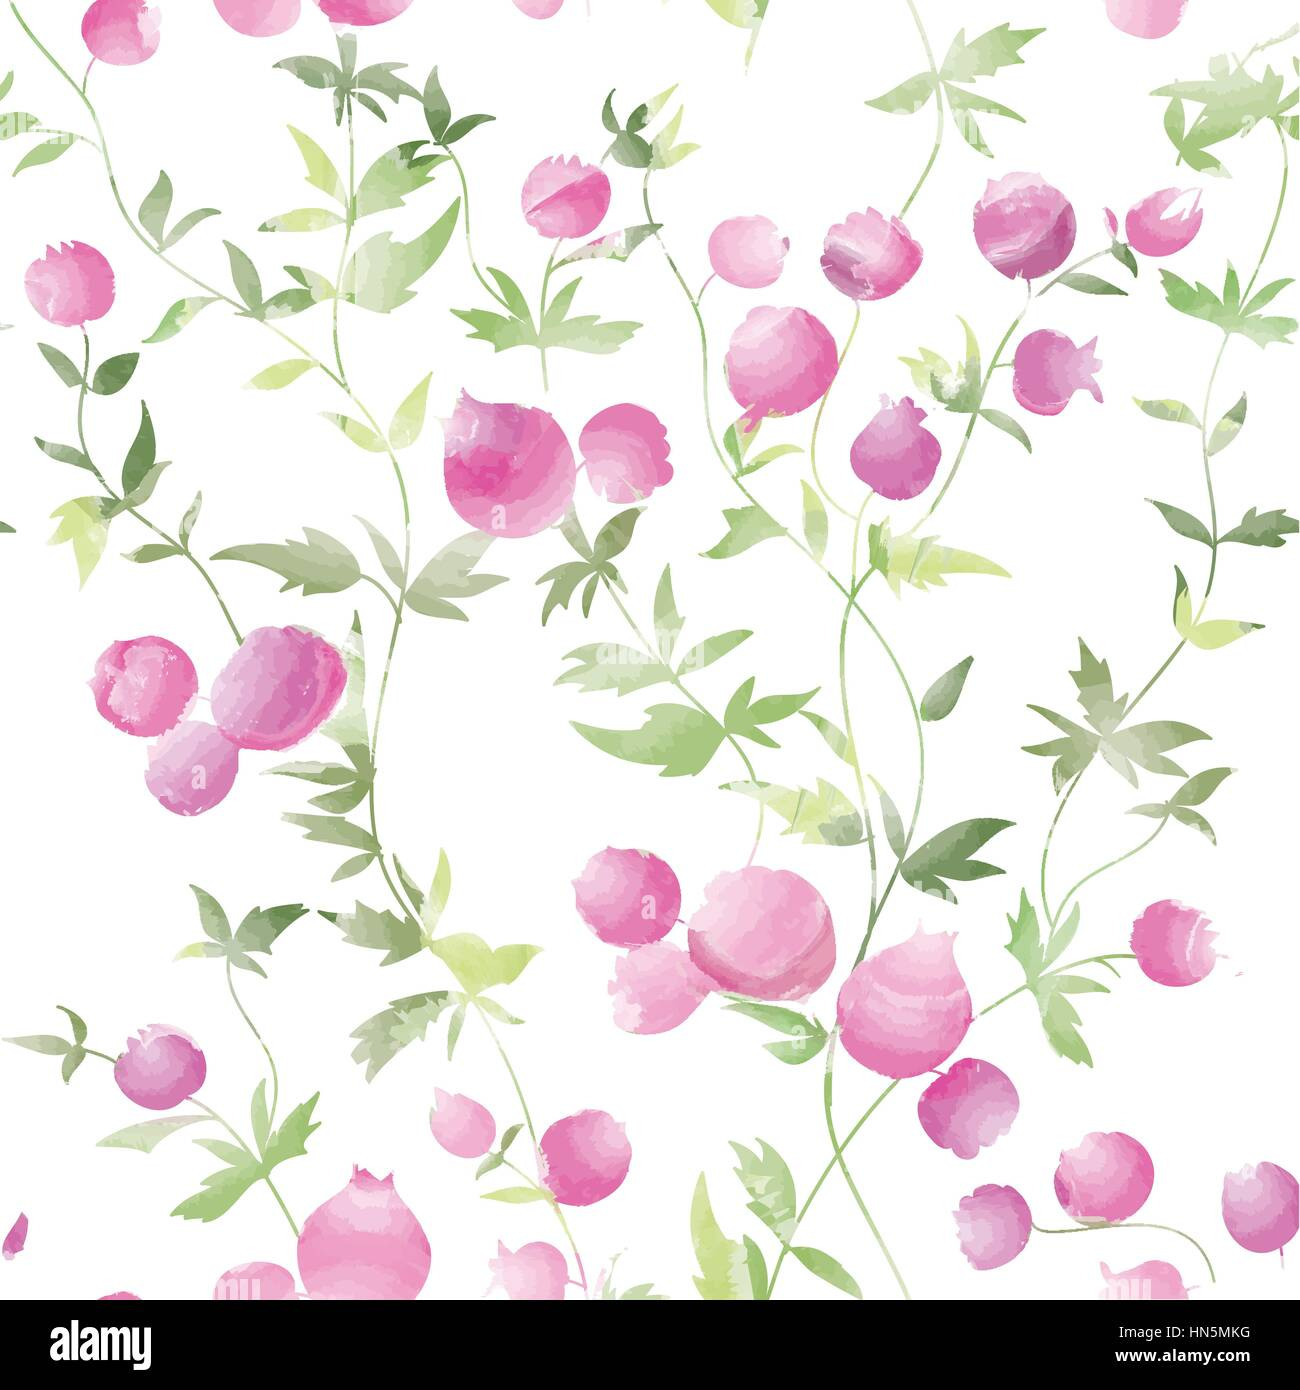 Floral Seamless Pattern Flower Watercolor Background Floral